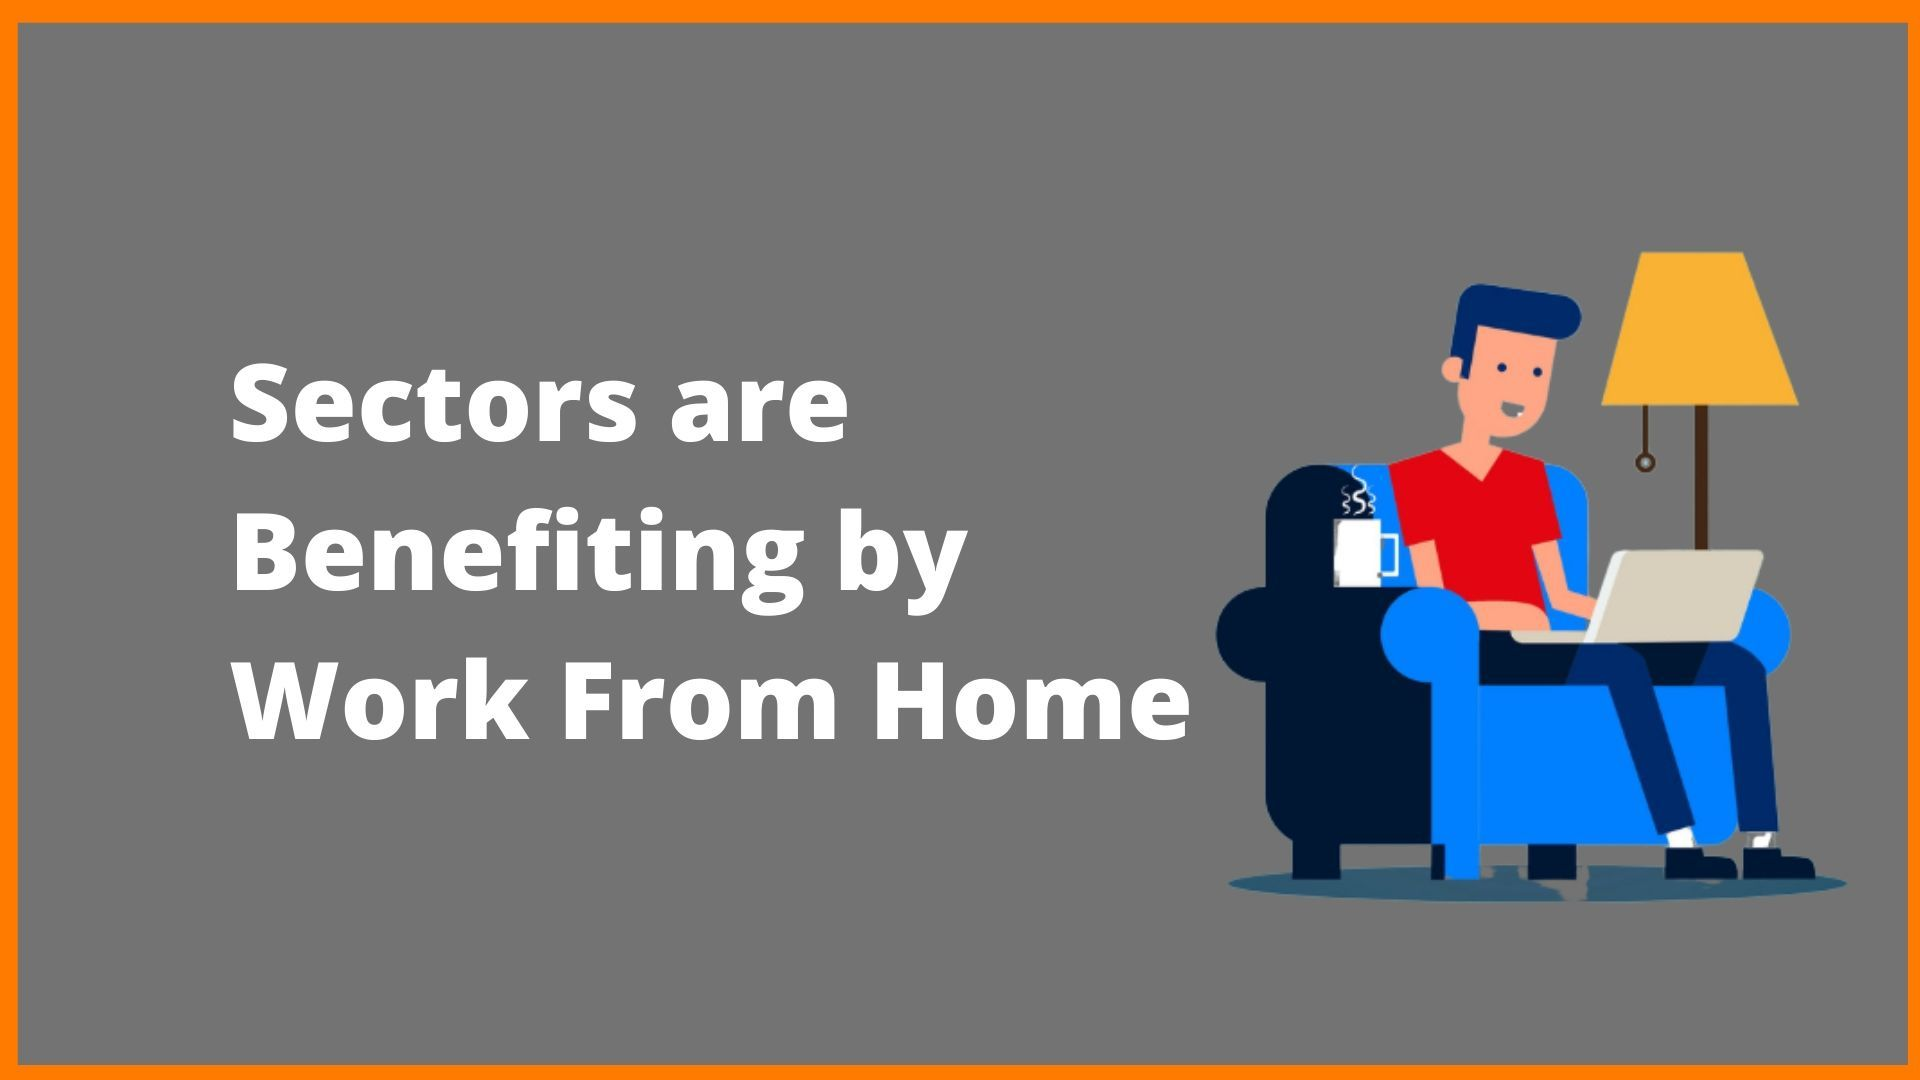 Sectors are Benefiting by Work From Home